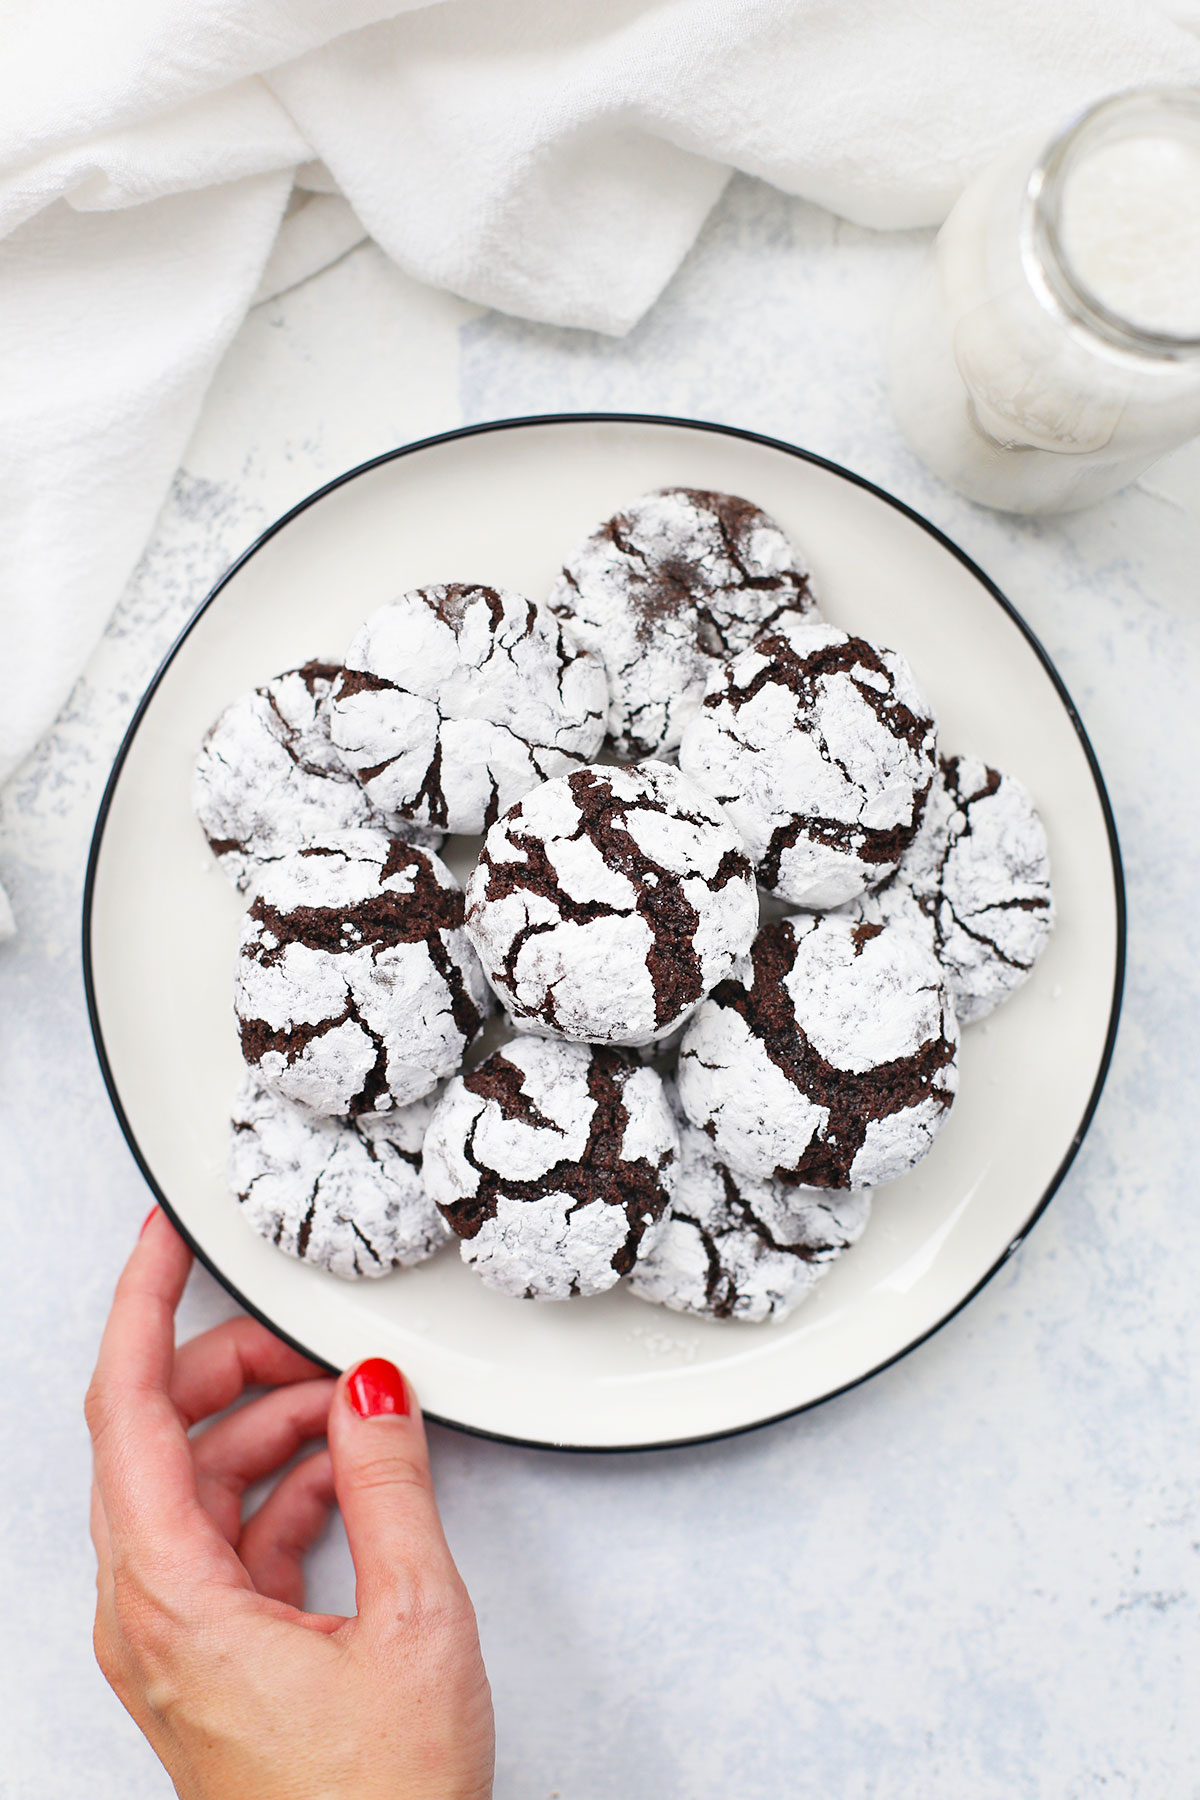 Overhead view of a plate of gluten-free chocolate crinkle cookies on a white background